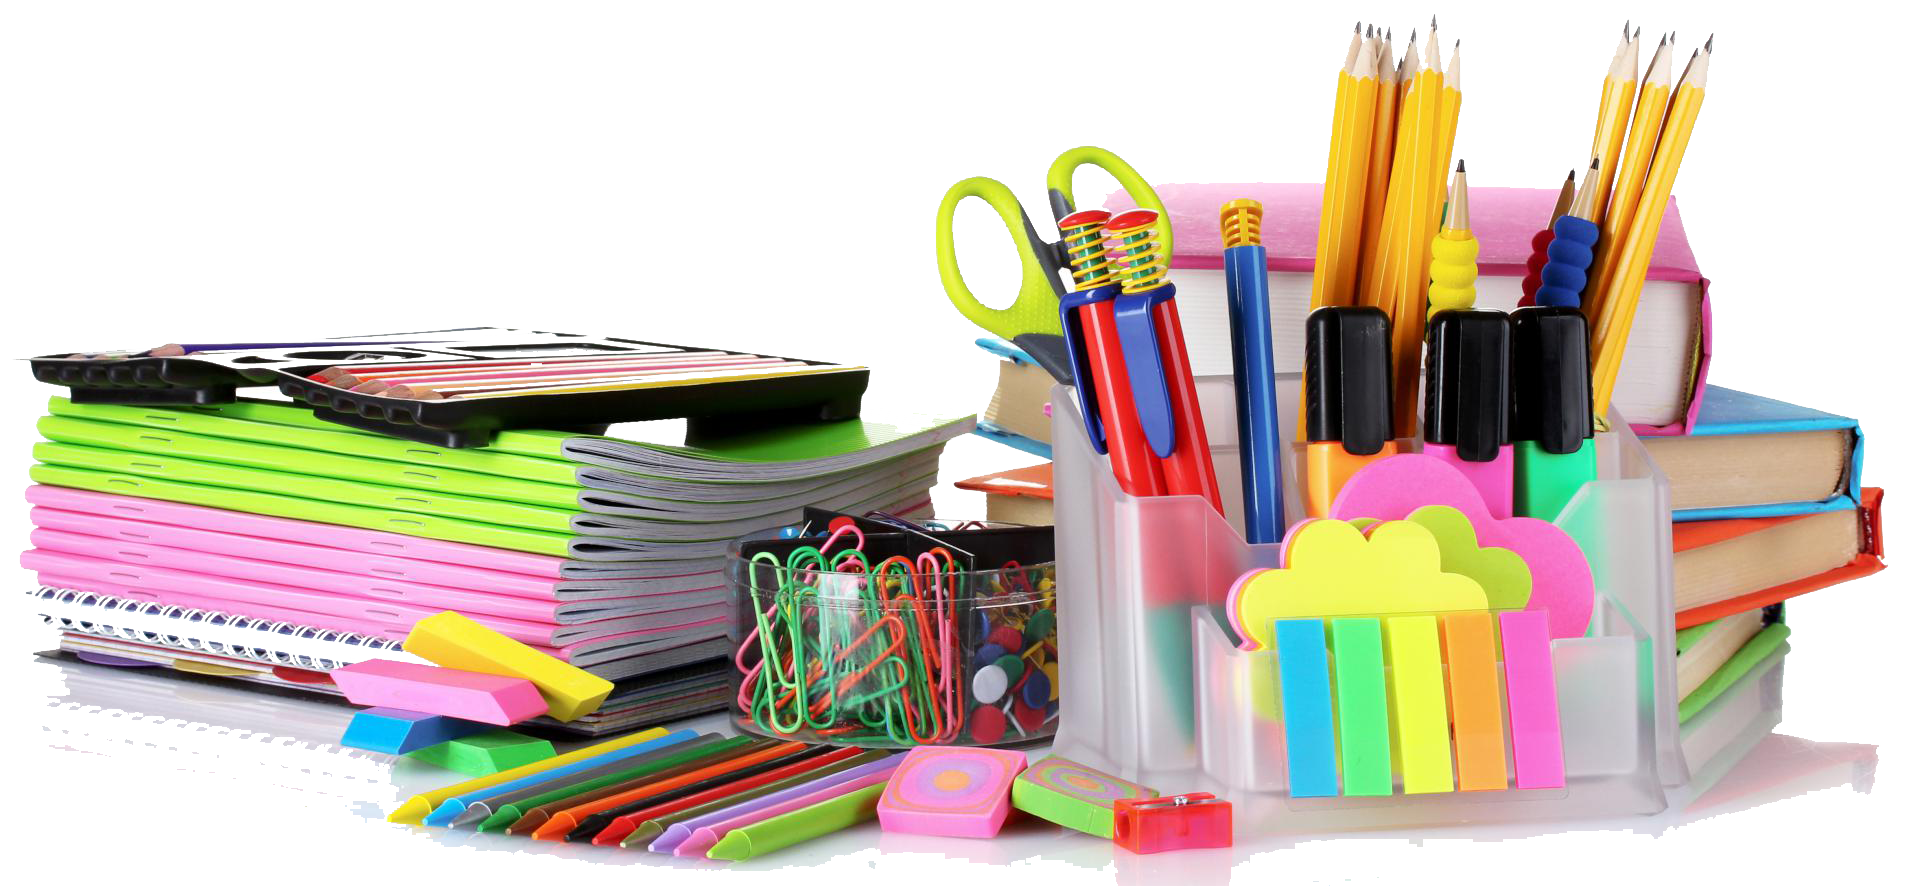 School Supplies Background Png Philips Stationers Llc A Friendly Place To Shop For